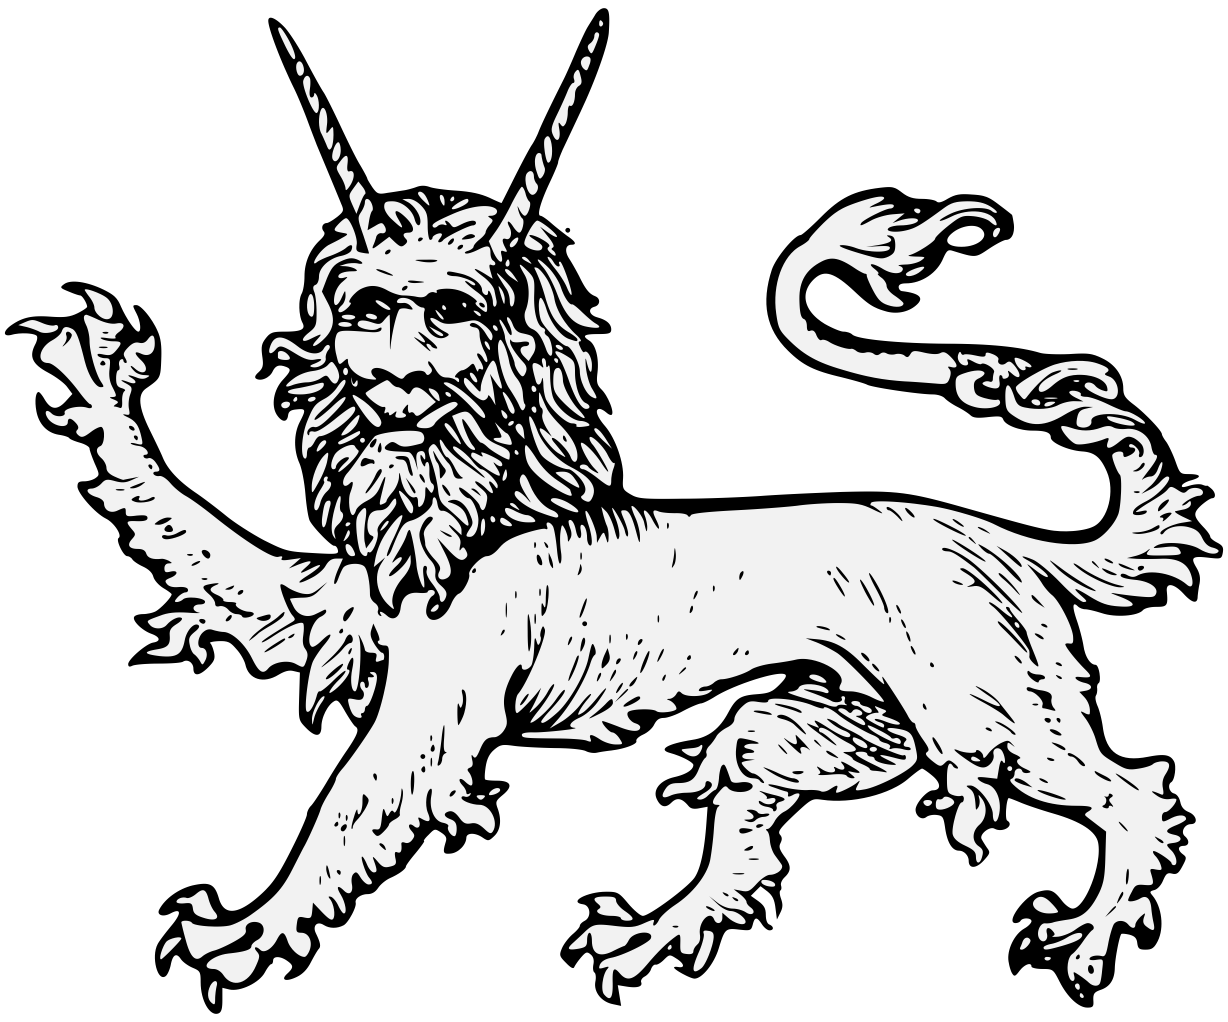 Traceable heraldic art pdf. Manticore drawing banner freeuse download